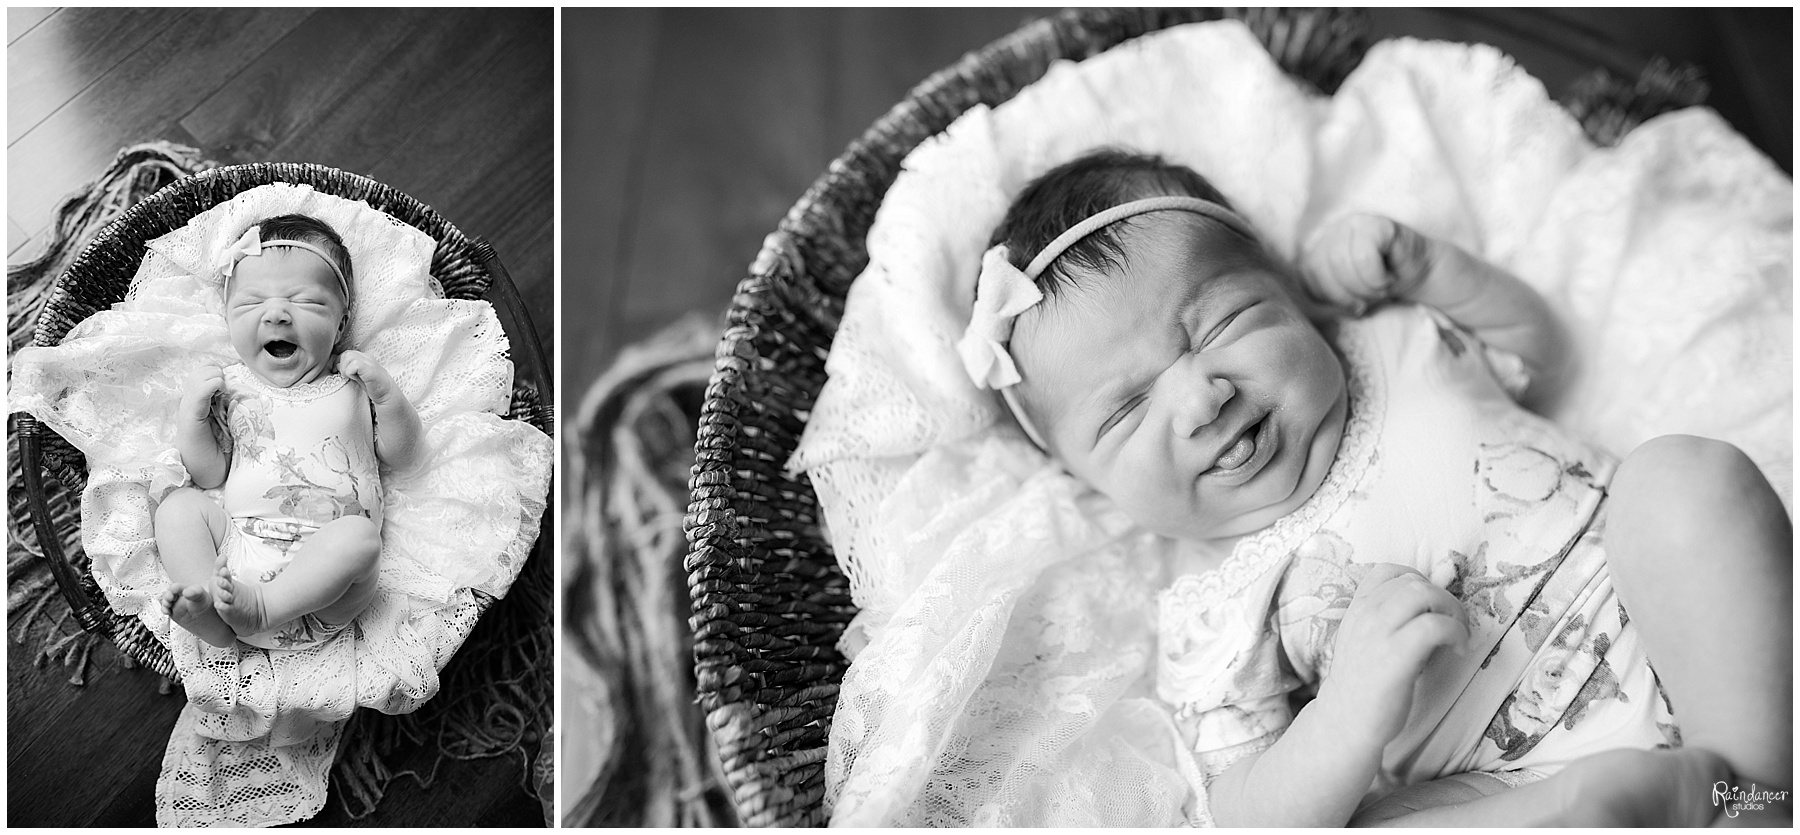 Baby girl yawns and sticks tongue out during her newborn session in Bloomington, Indiana.